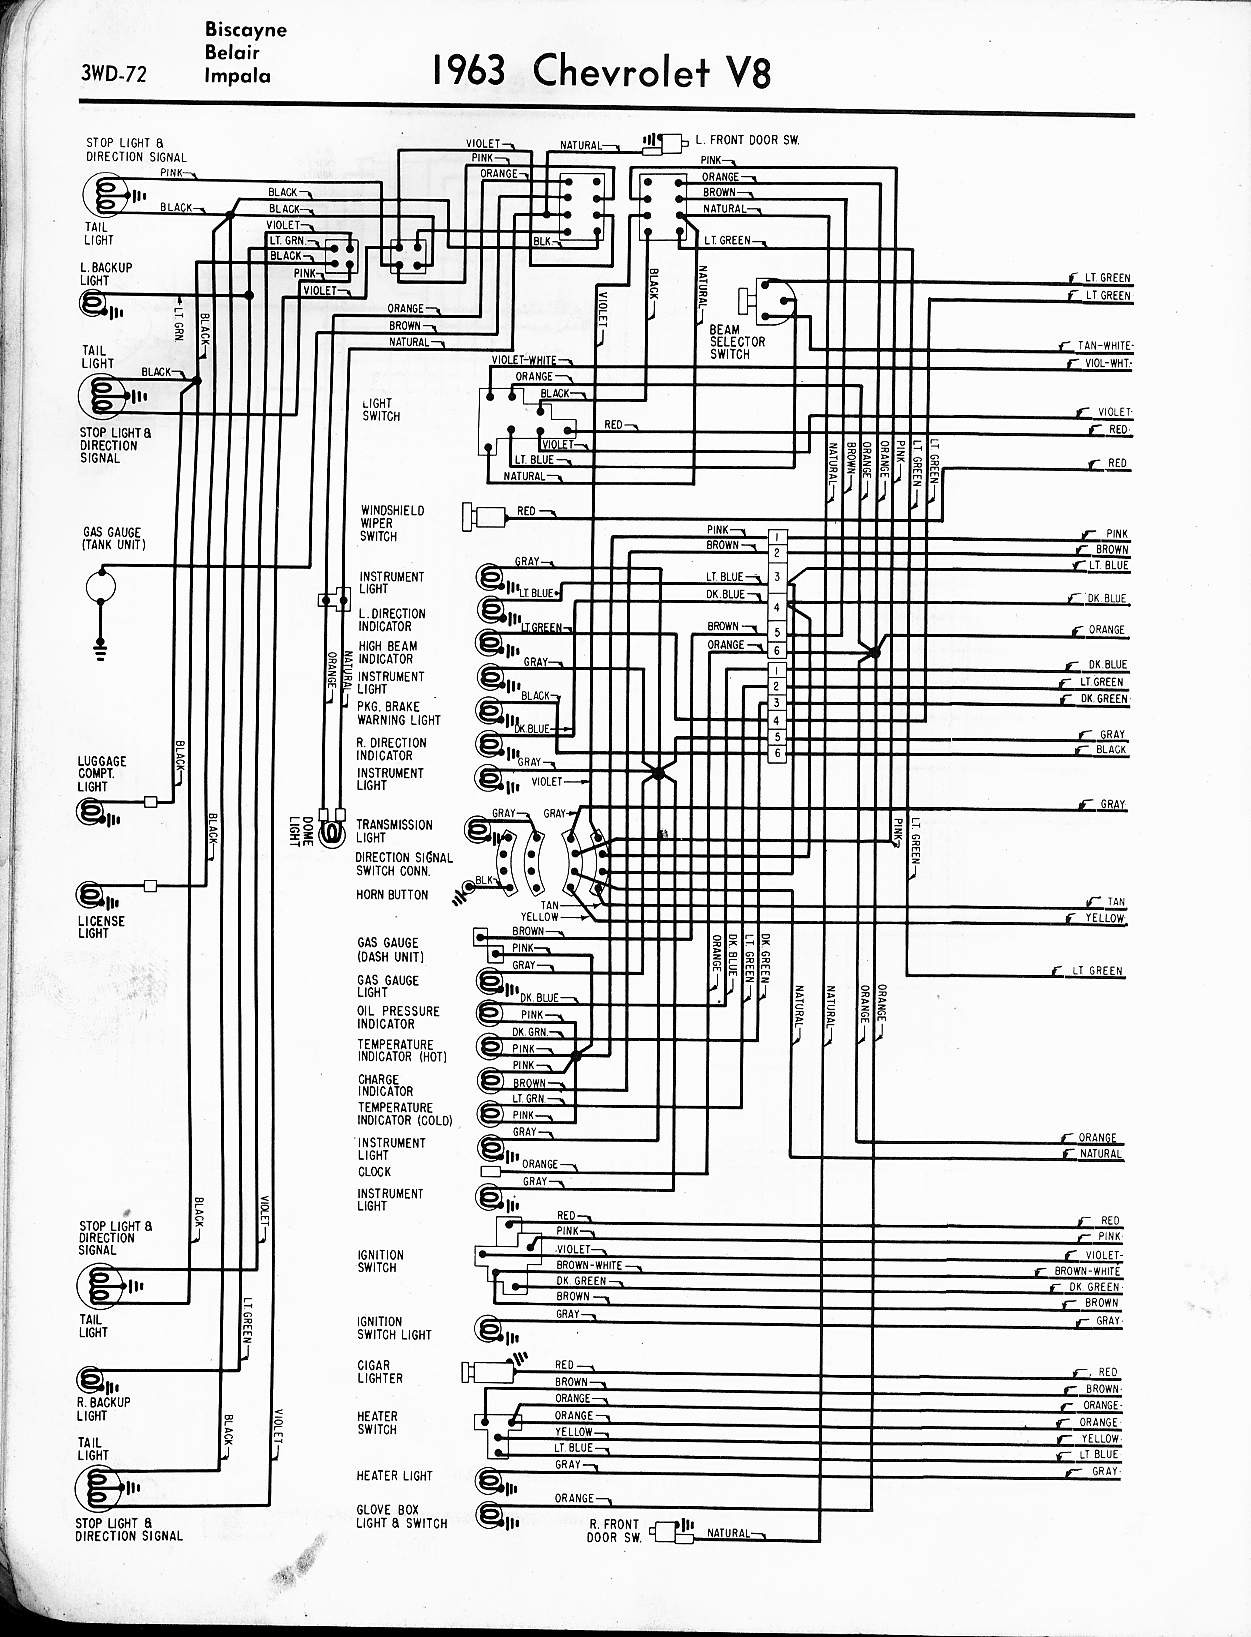 1963 chevy impala wagon wiring harness wiring diagrams